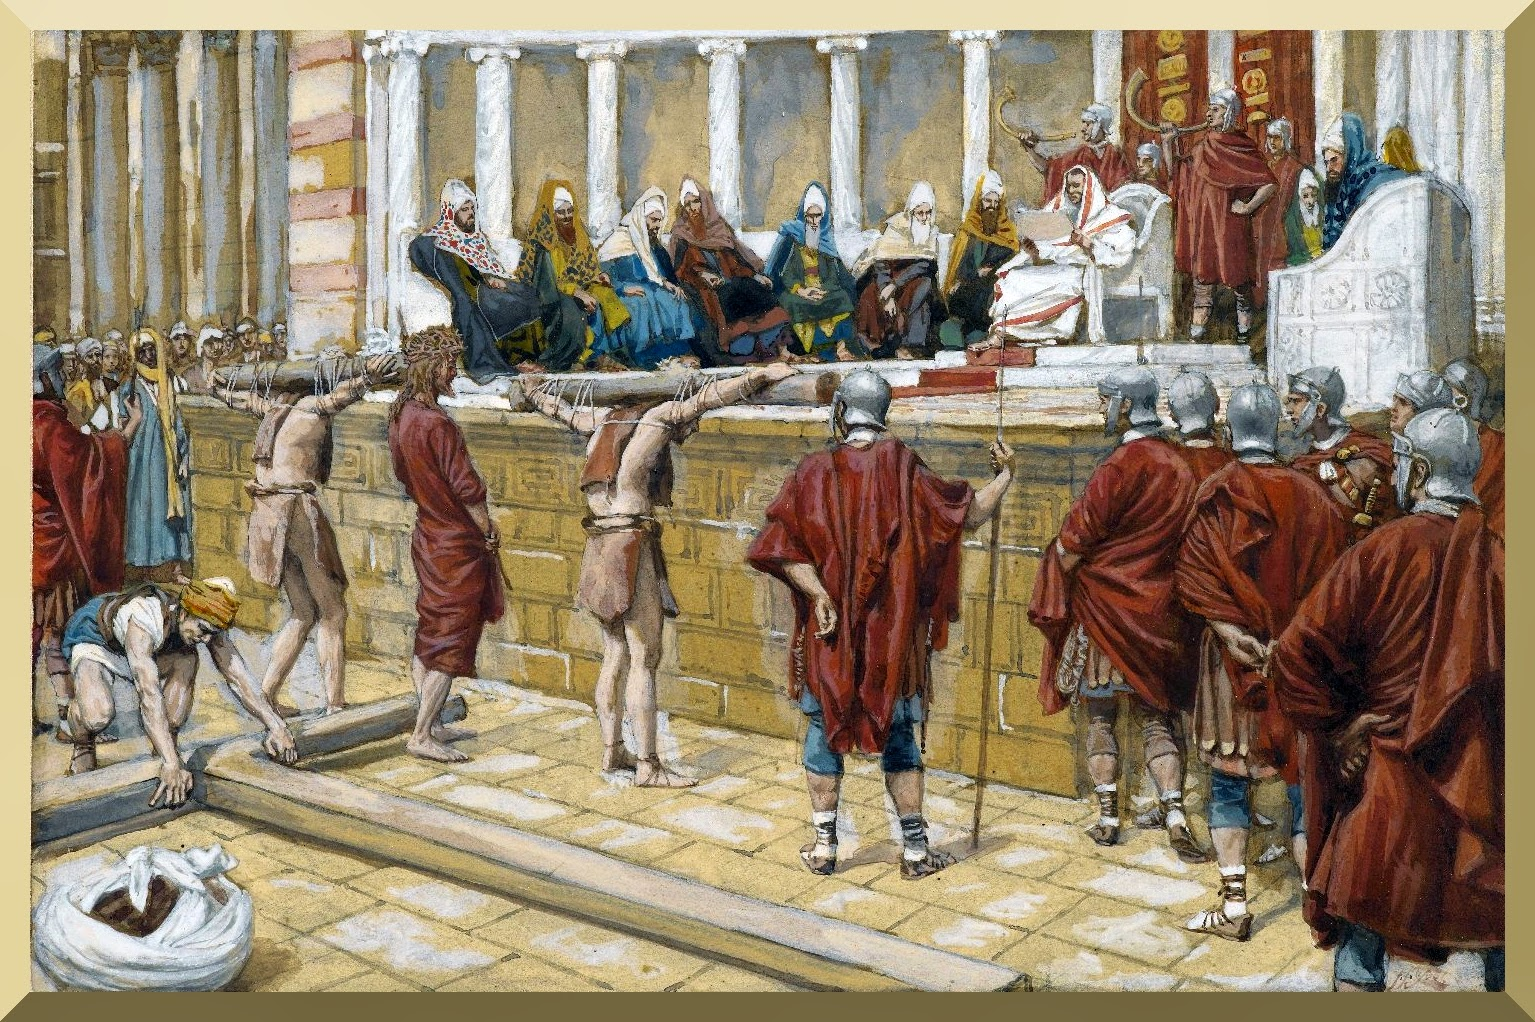 The Judgment on the Gabbatha